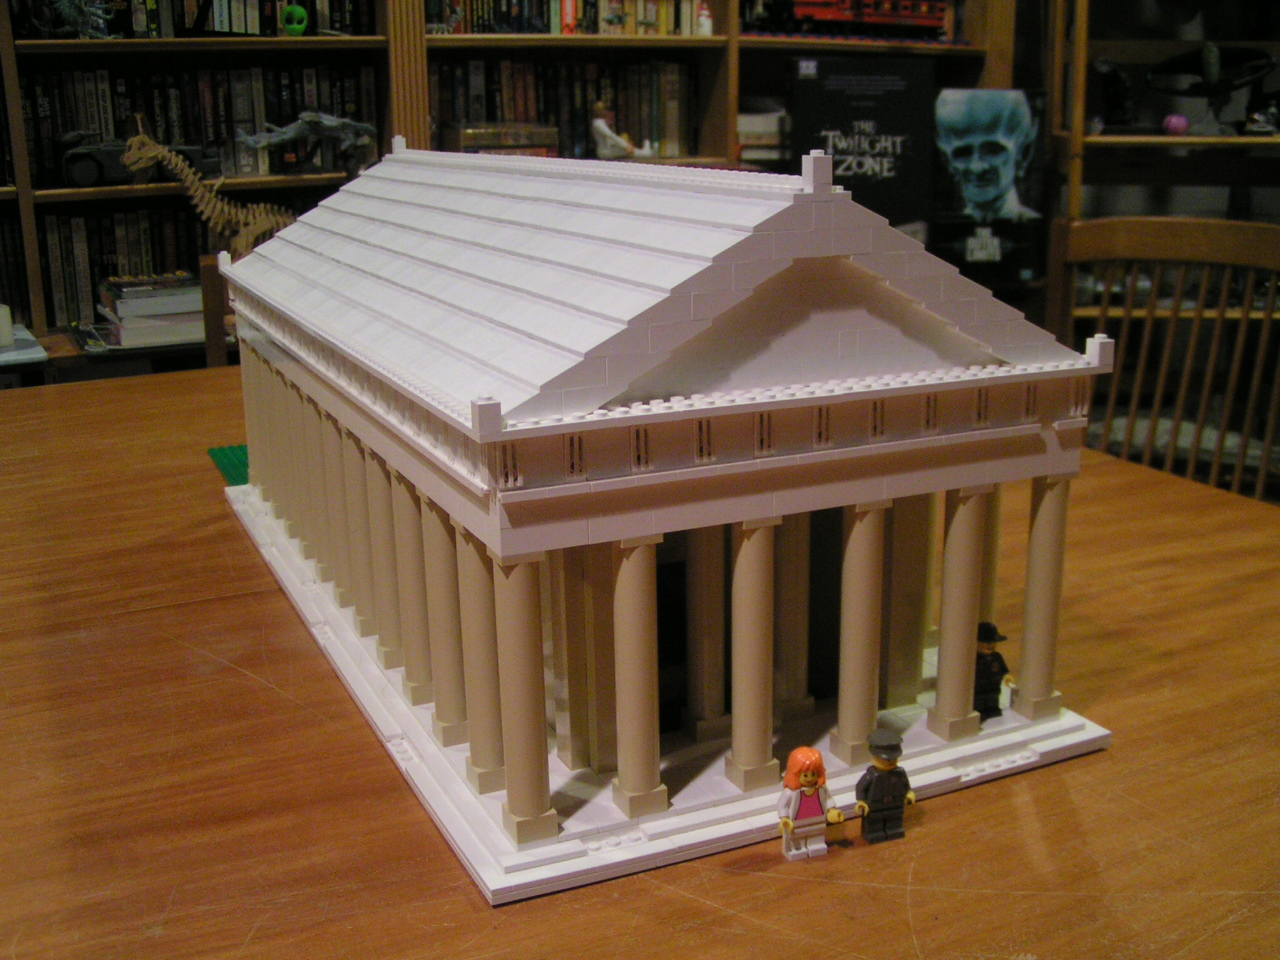 greektemple0004.jpg